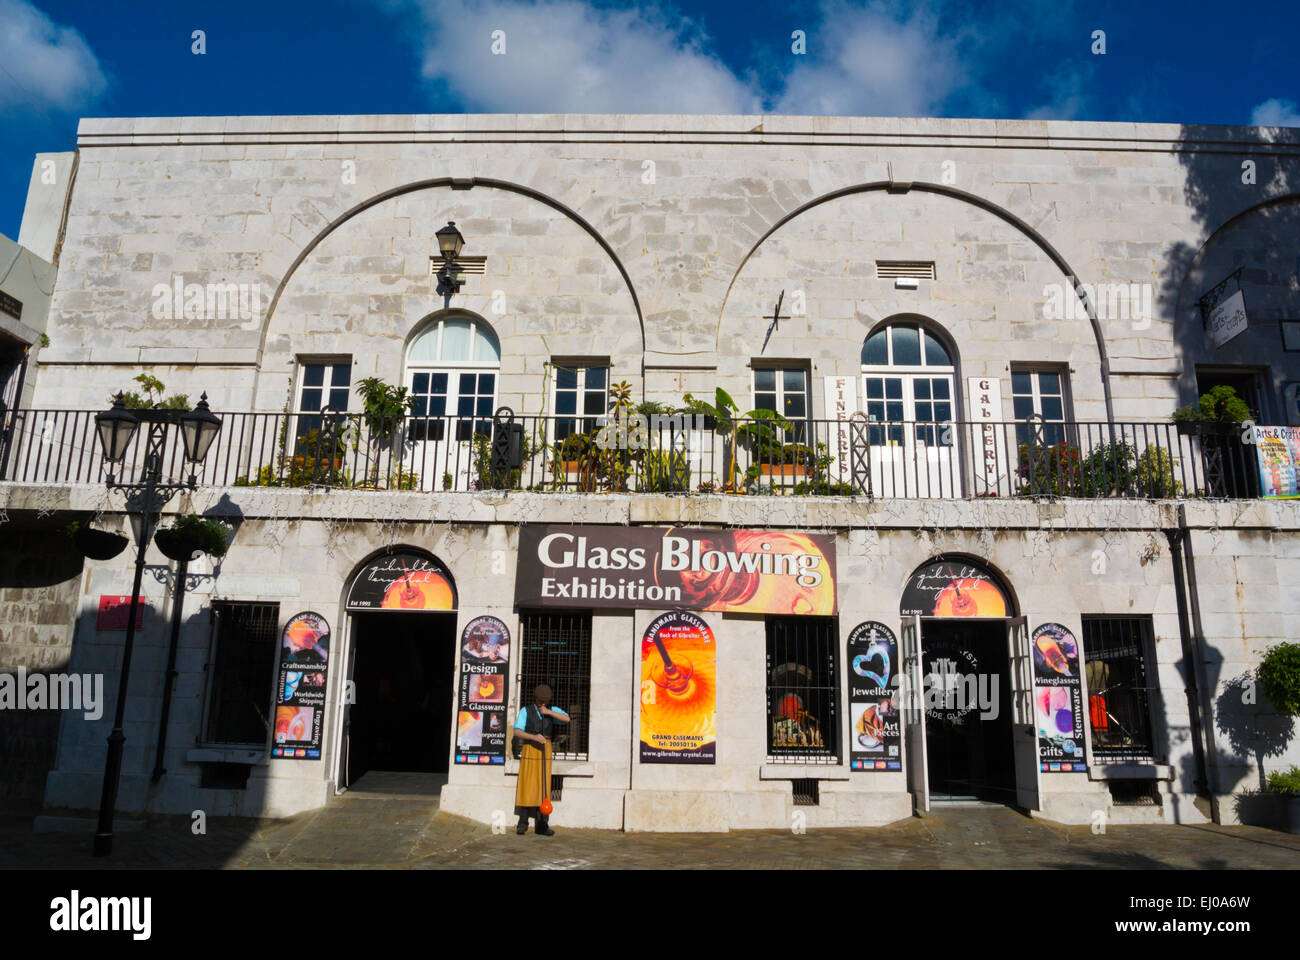 Glass blowing exhibition and jewellery shop, local glassware, Grand Casemates square, Gibraltar, Europe - Stock Image